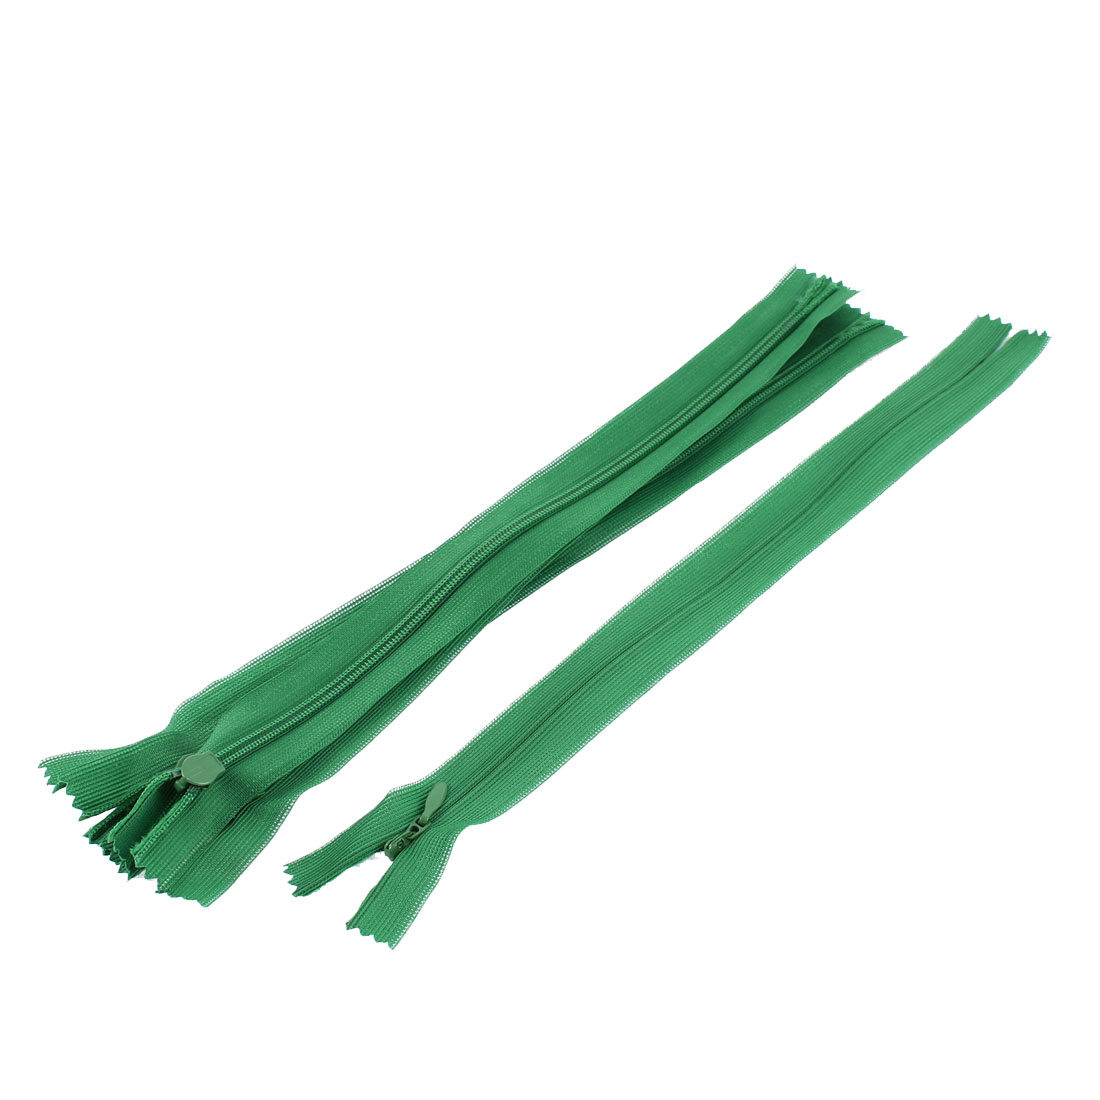 Dress Pants Closed End Nylon Zippers Tailor Sewing Craft Tool Green 25cm 5 Pcs